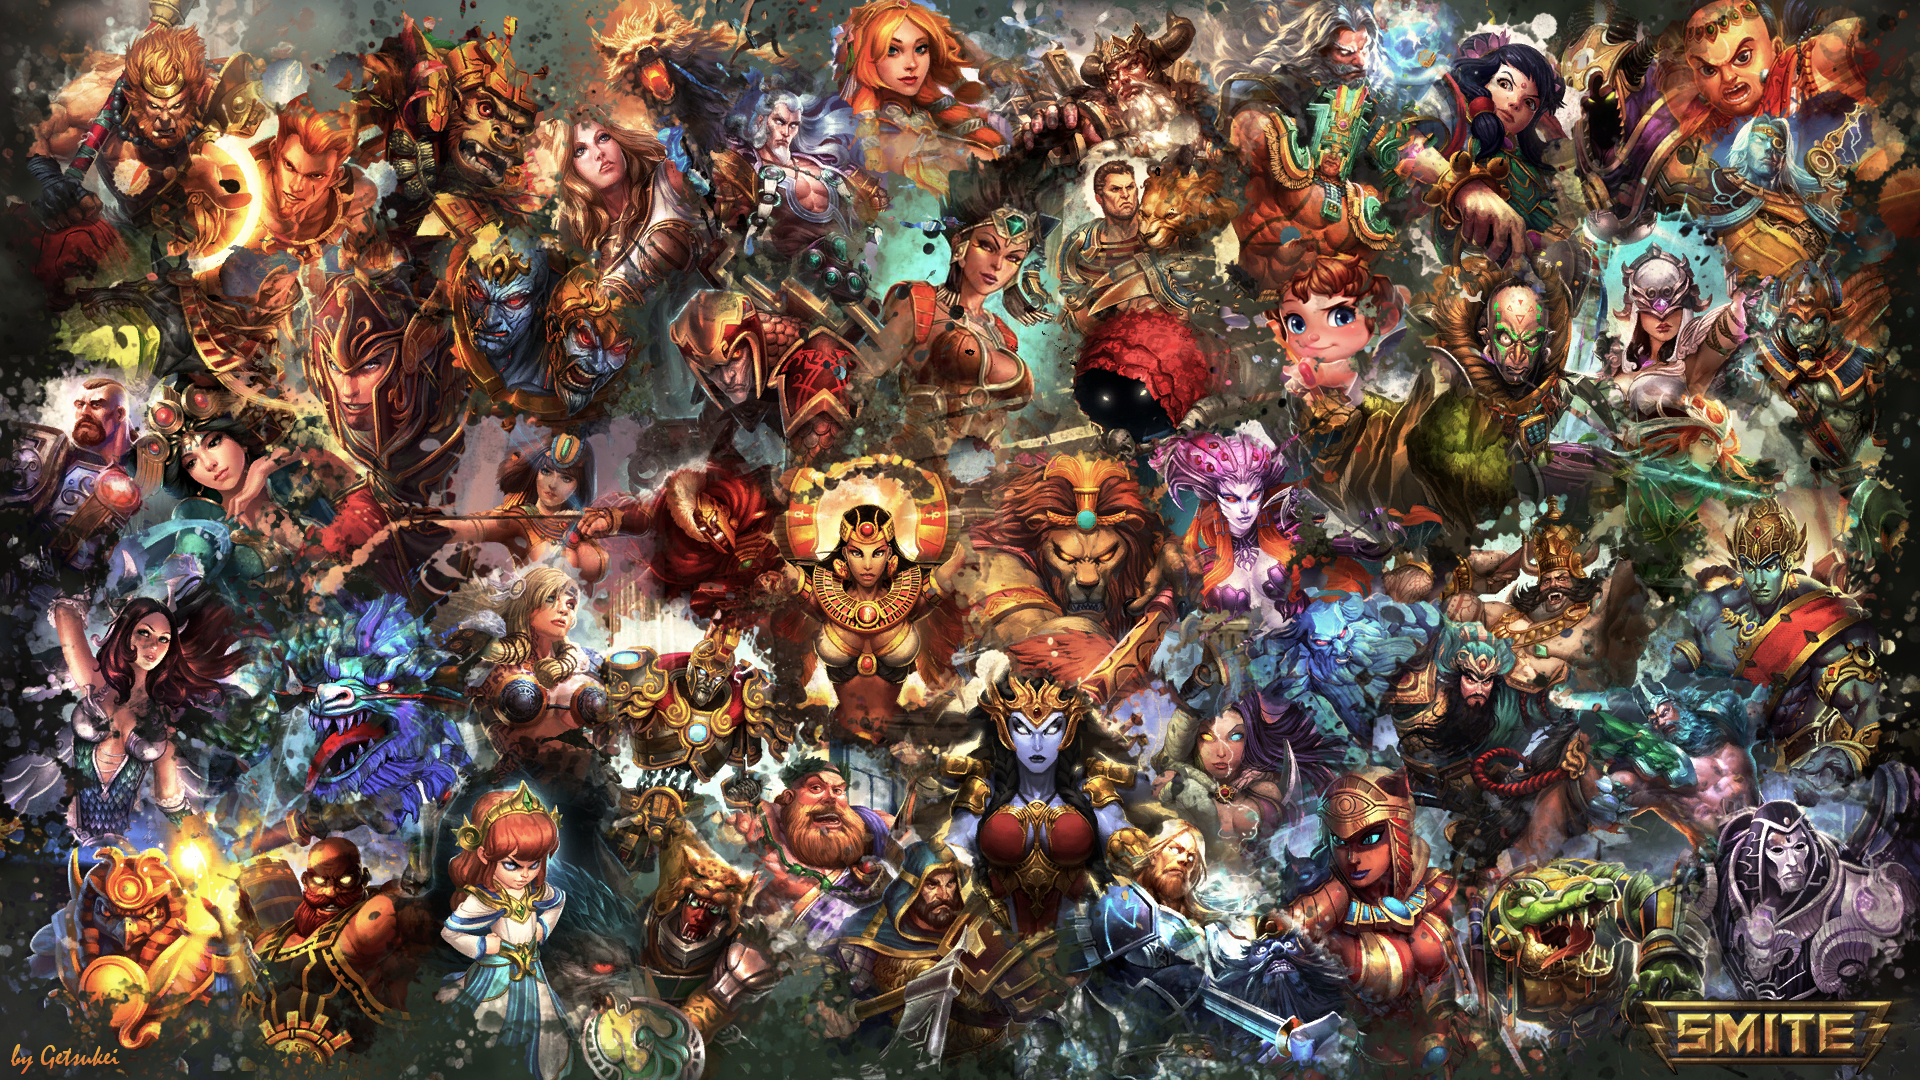 ... SMITE - All Gods Wallpaper (Serqet Edition) by Getsukeii